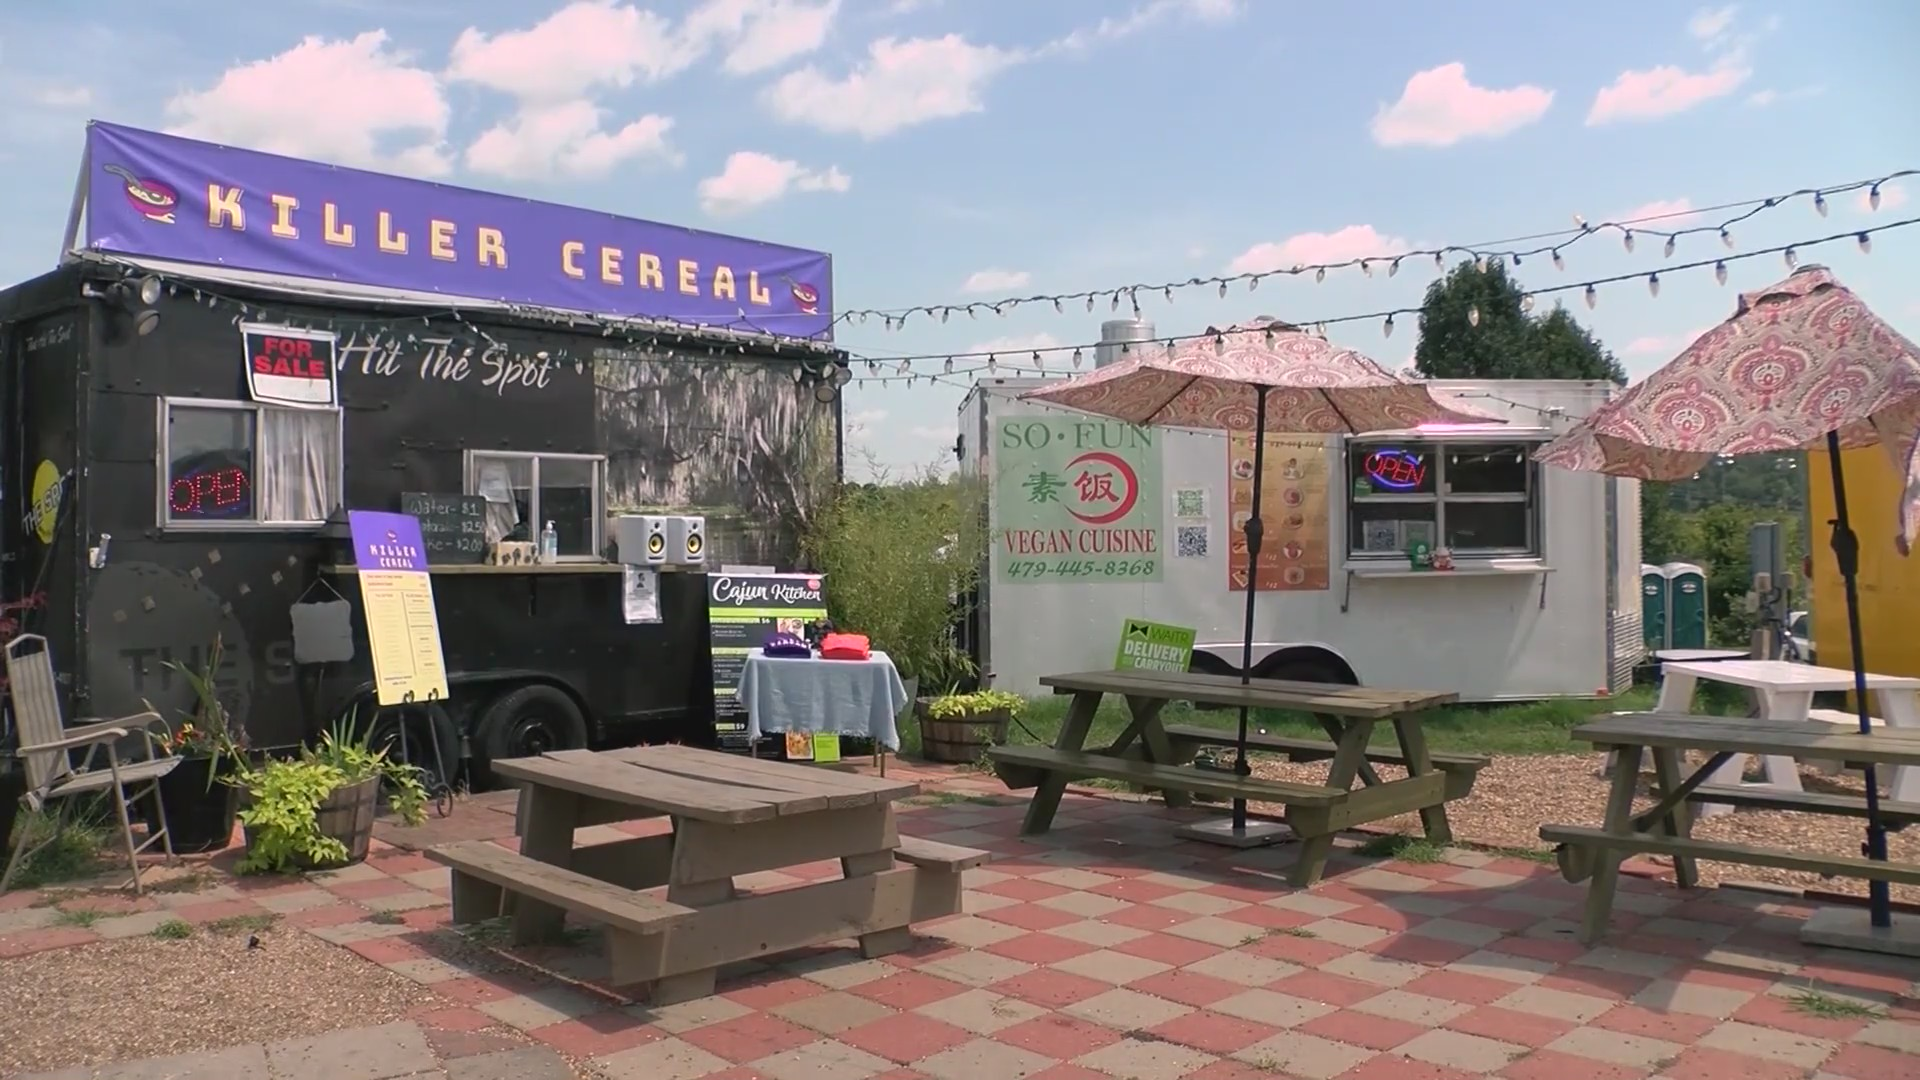 Student opens 'Killer Cereal Food Truck' in Fayetteville